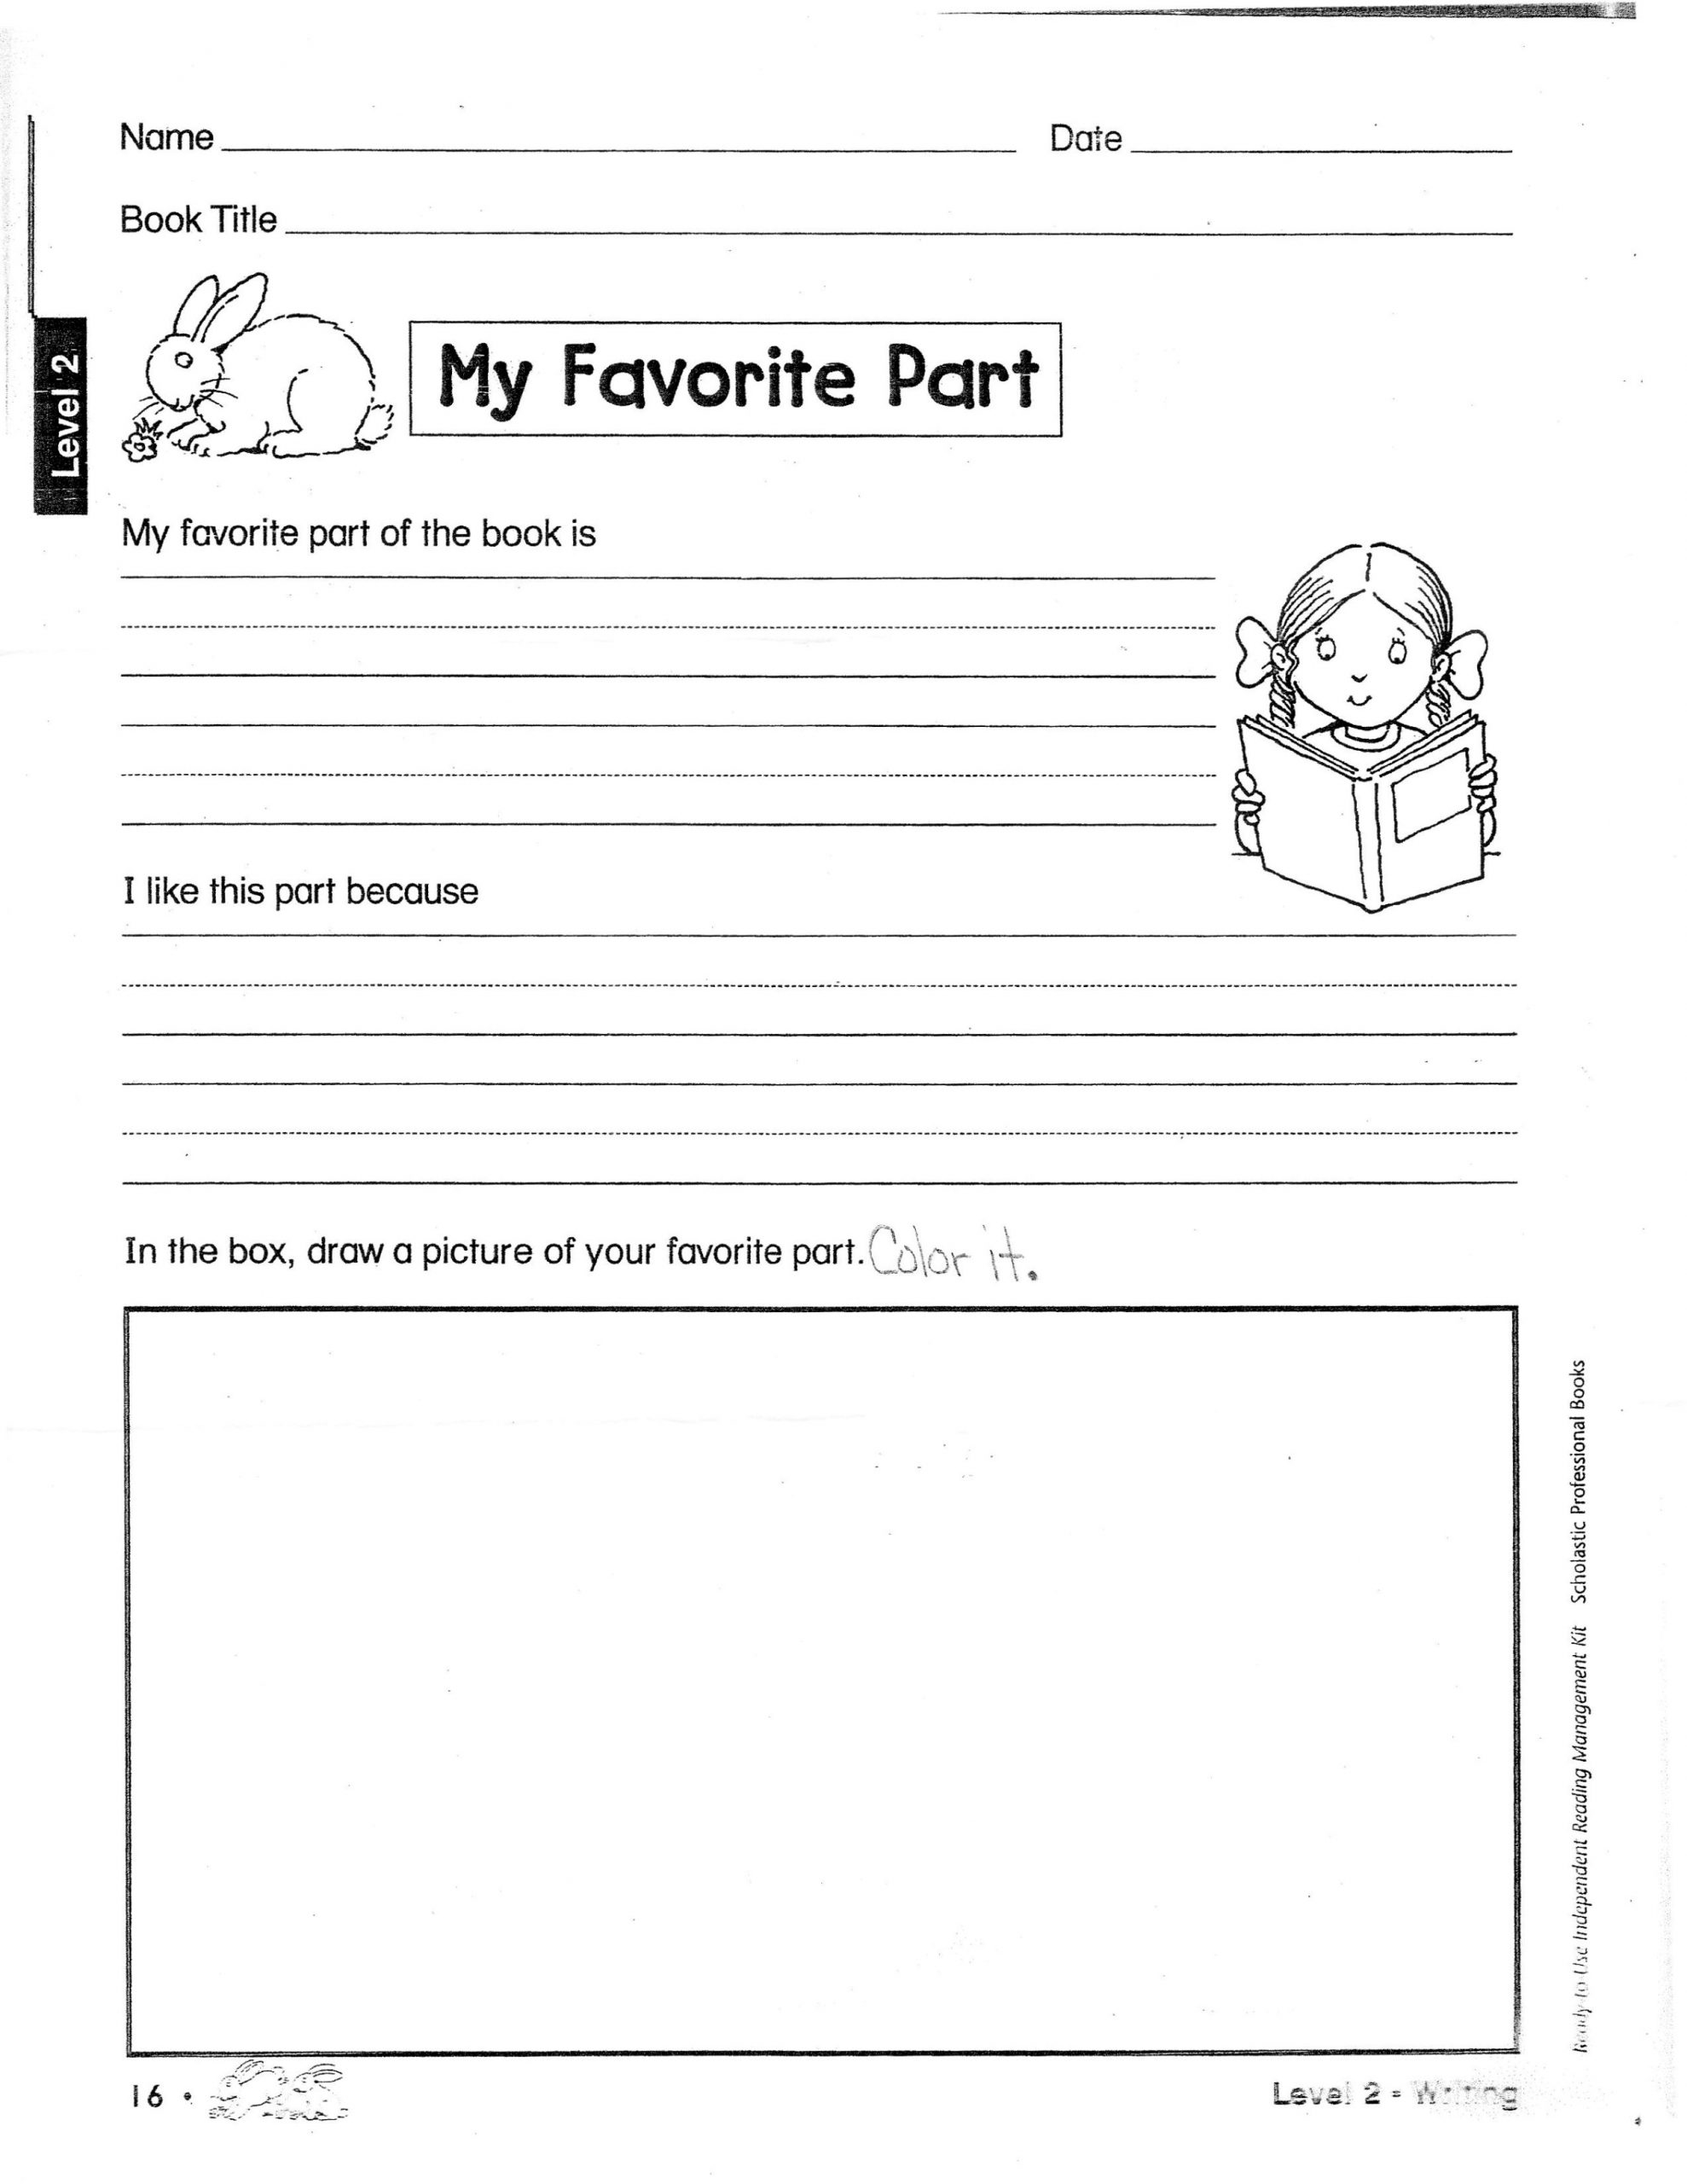 Summary Worksheets 2nd Grade Buy Cheap Essays In the Easiest Way E Hour Essay